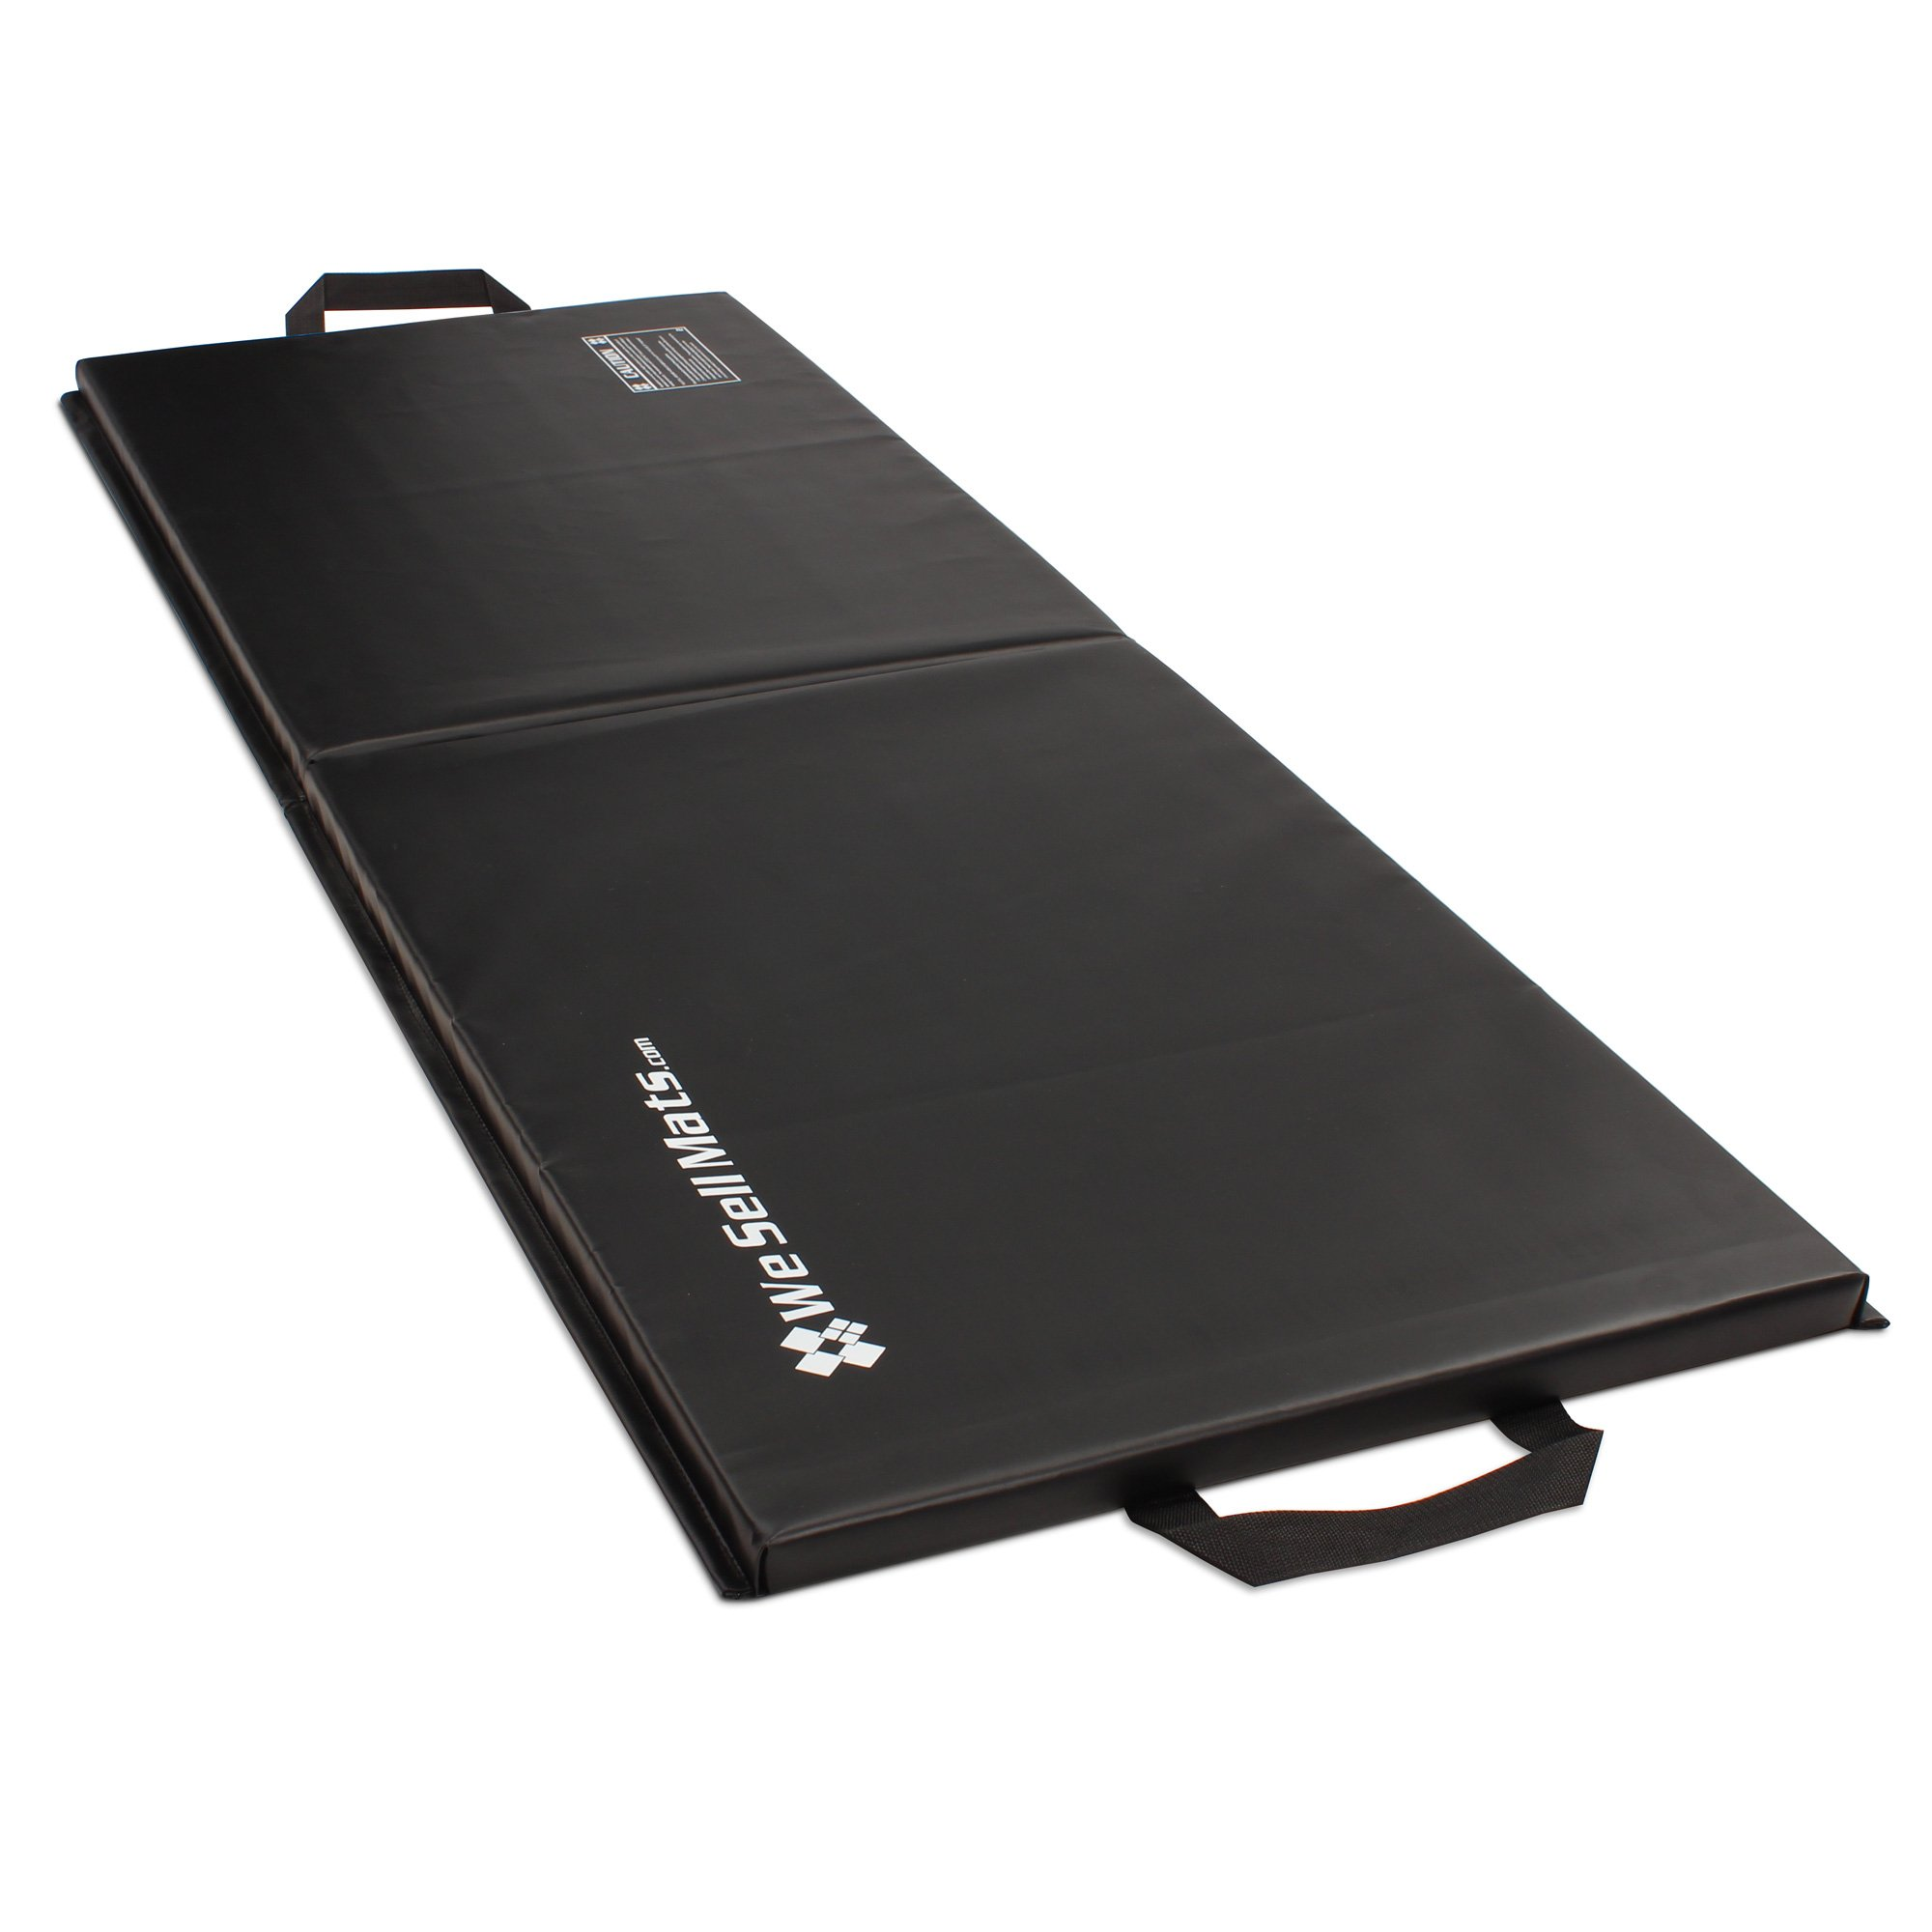 We Sell Mats 2x6 Folding Exercise Mat, Black